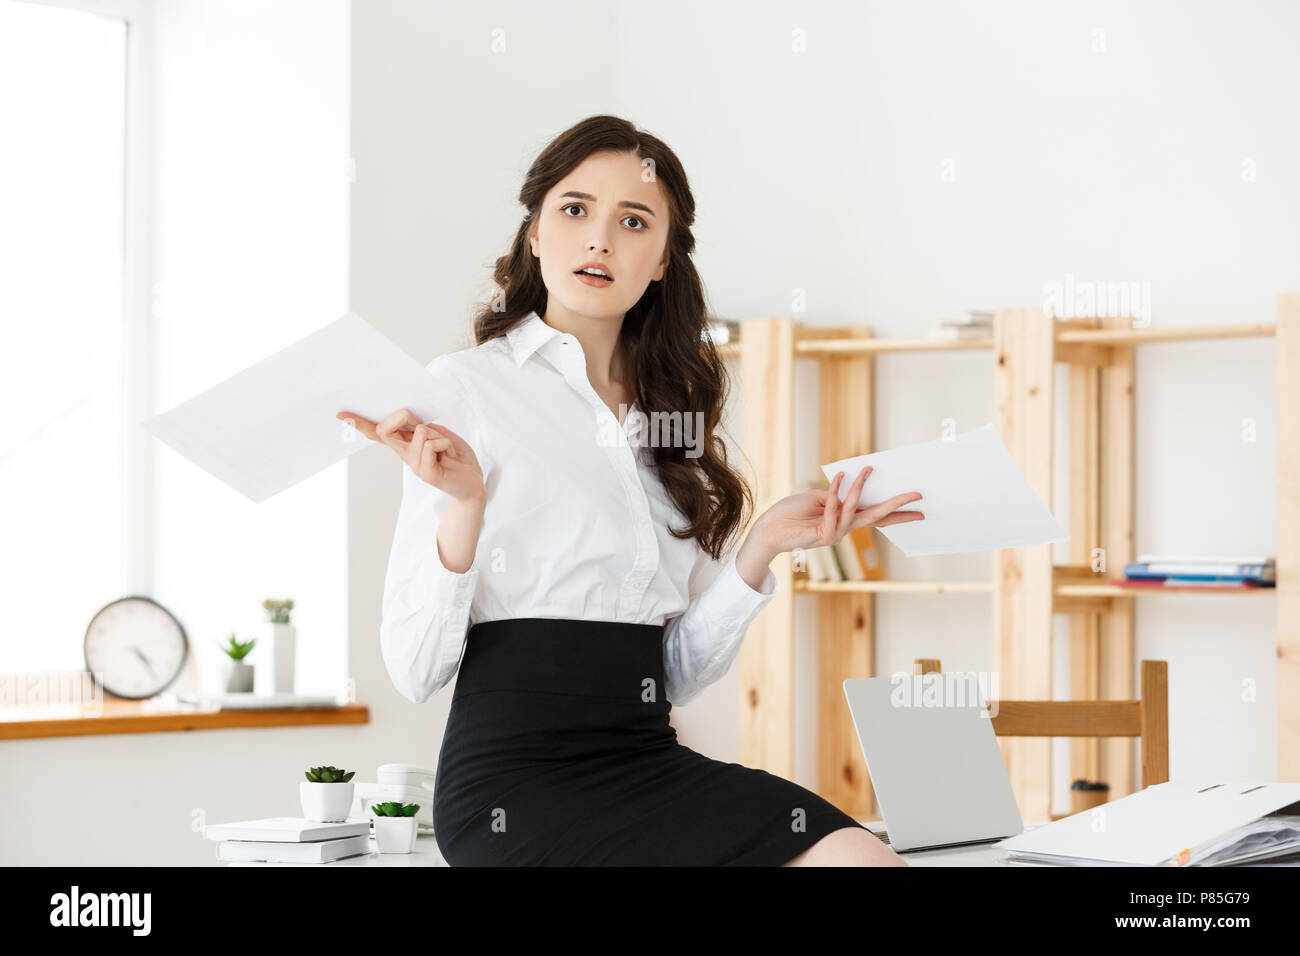 Shocked young business woman surprised by reading unexpected news in document, amazed woman office worker feeling stunned baffled by unbelievable information in paper about debt or dismissal - Stock Image